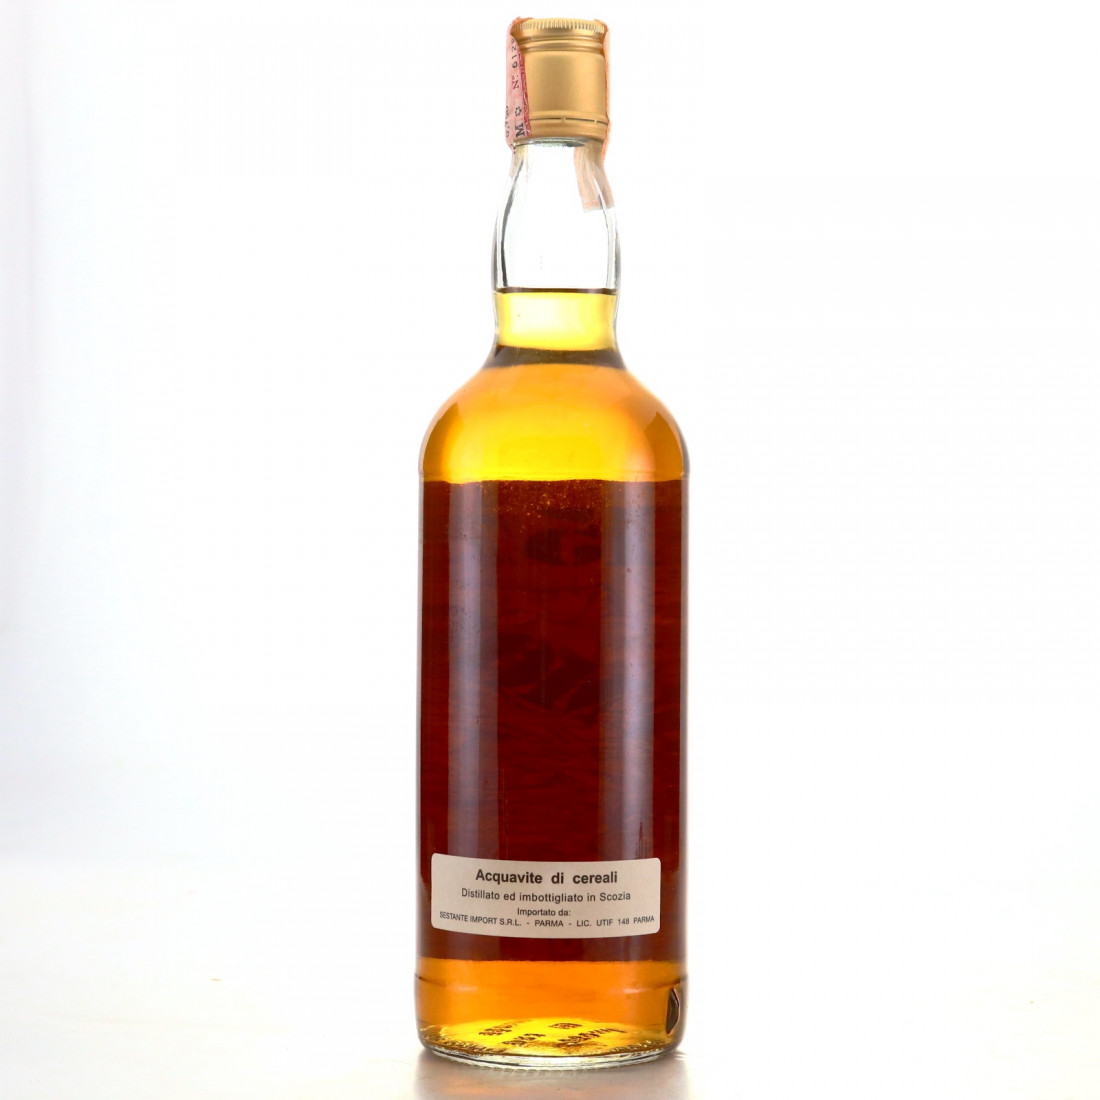 Bowmore 15 Year Old Sestante for Il Carato